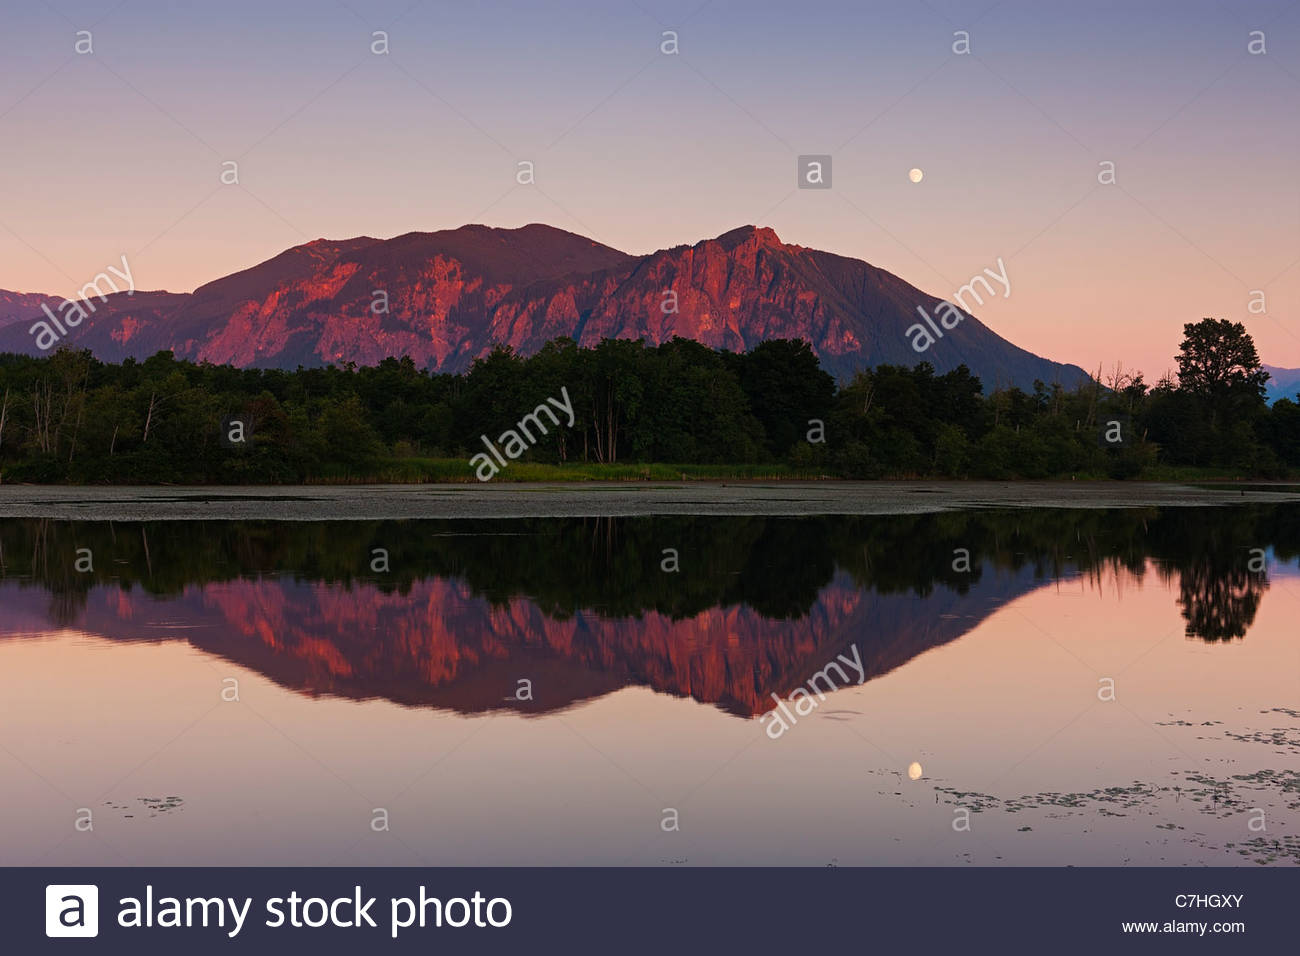 The nearly full moon rises over Mount Si, a 4,167 foot (1,270 meter) mountain located near North Bend, Washington. - Stock Image